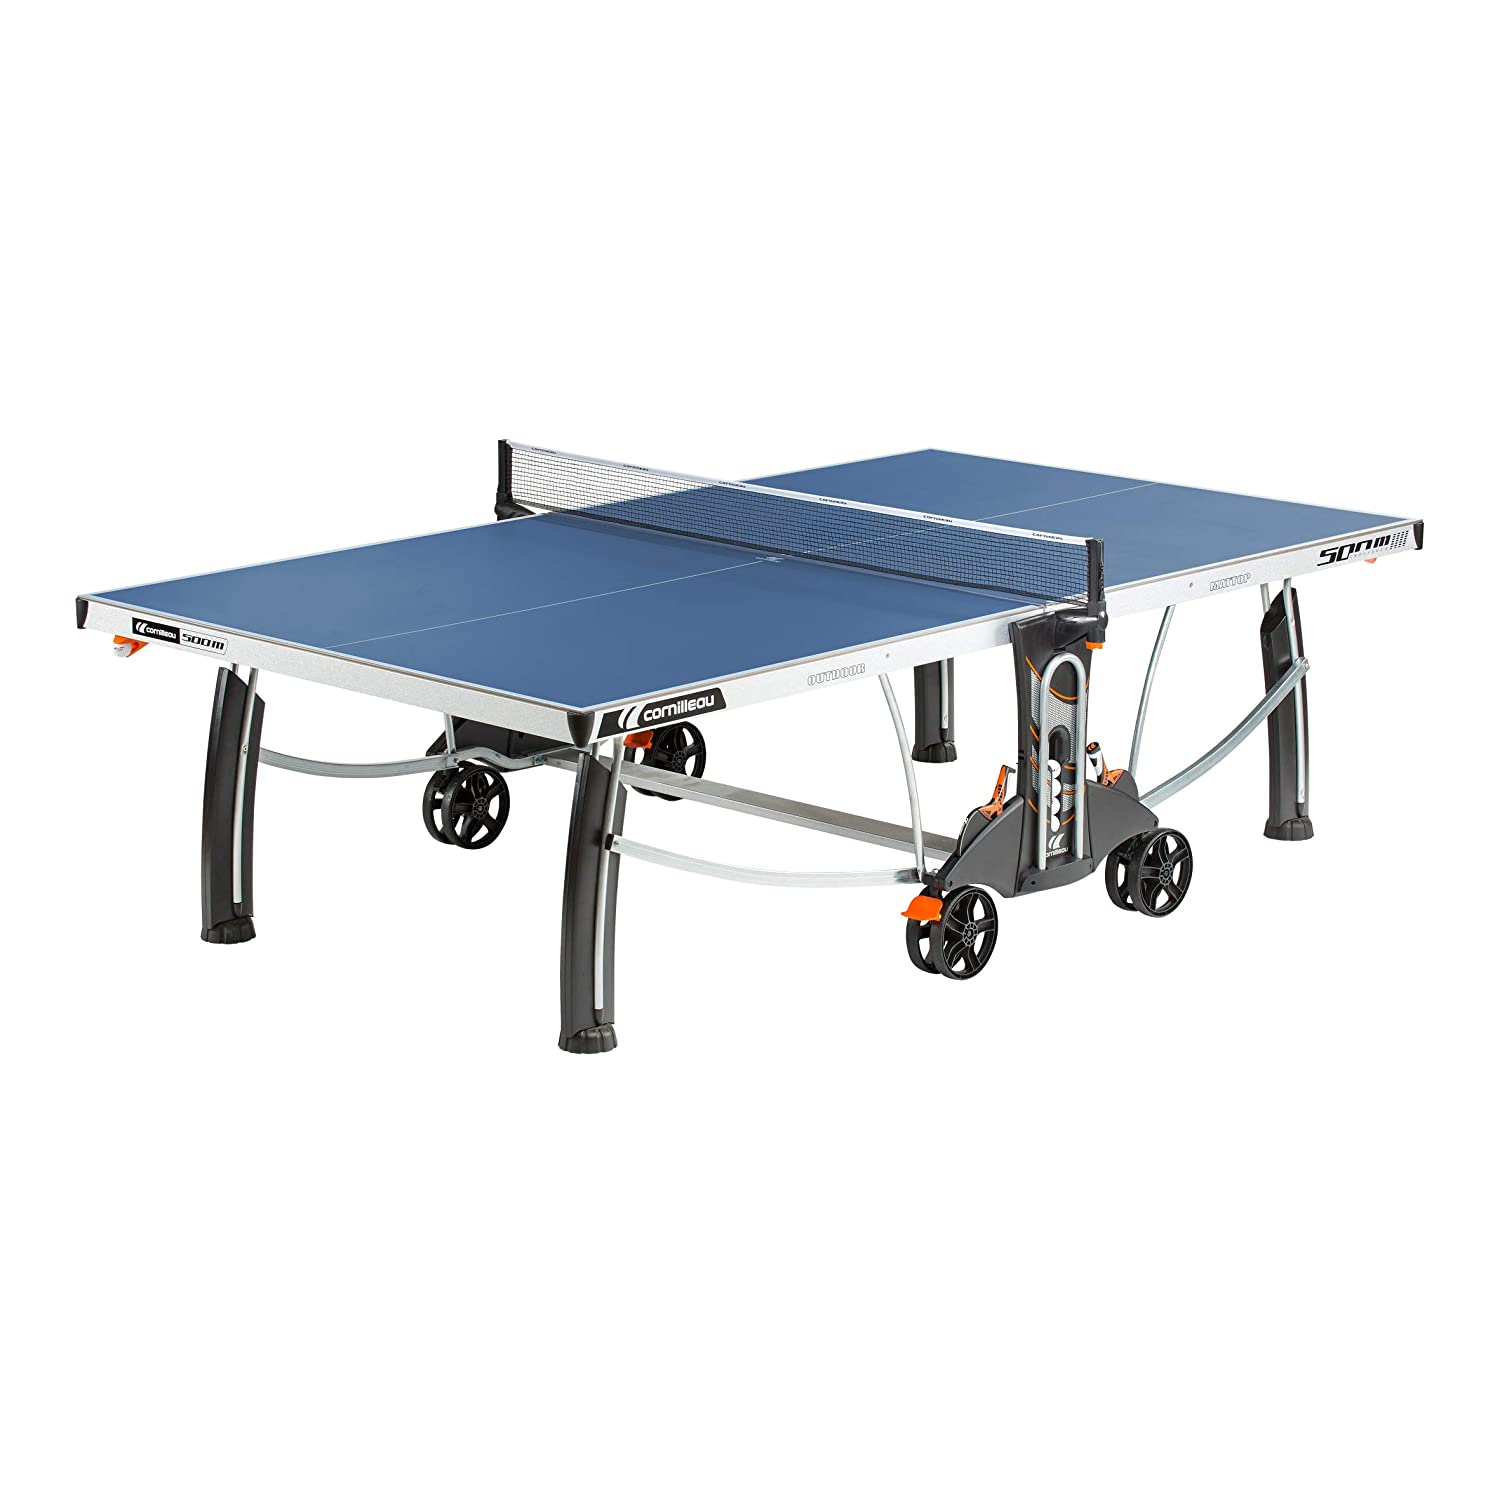 Cornilleau 500M Crossover – Best Indoor-Outdoor Ping-pong Table